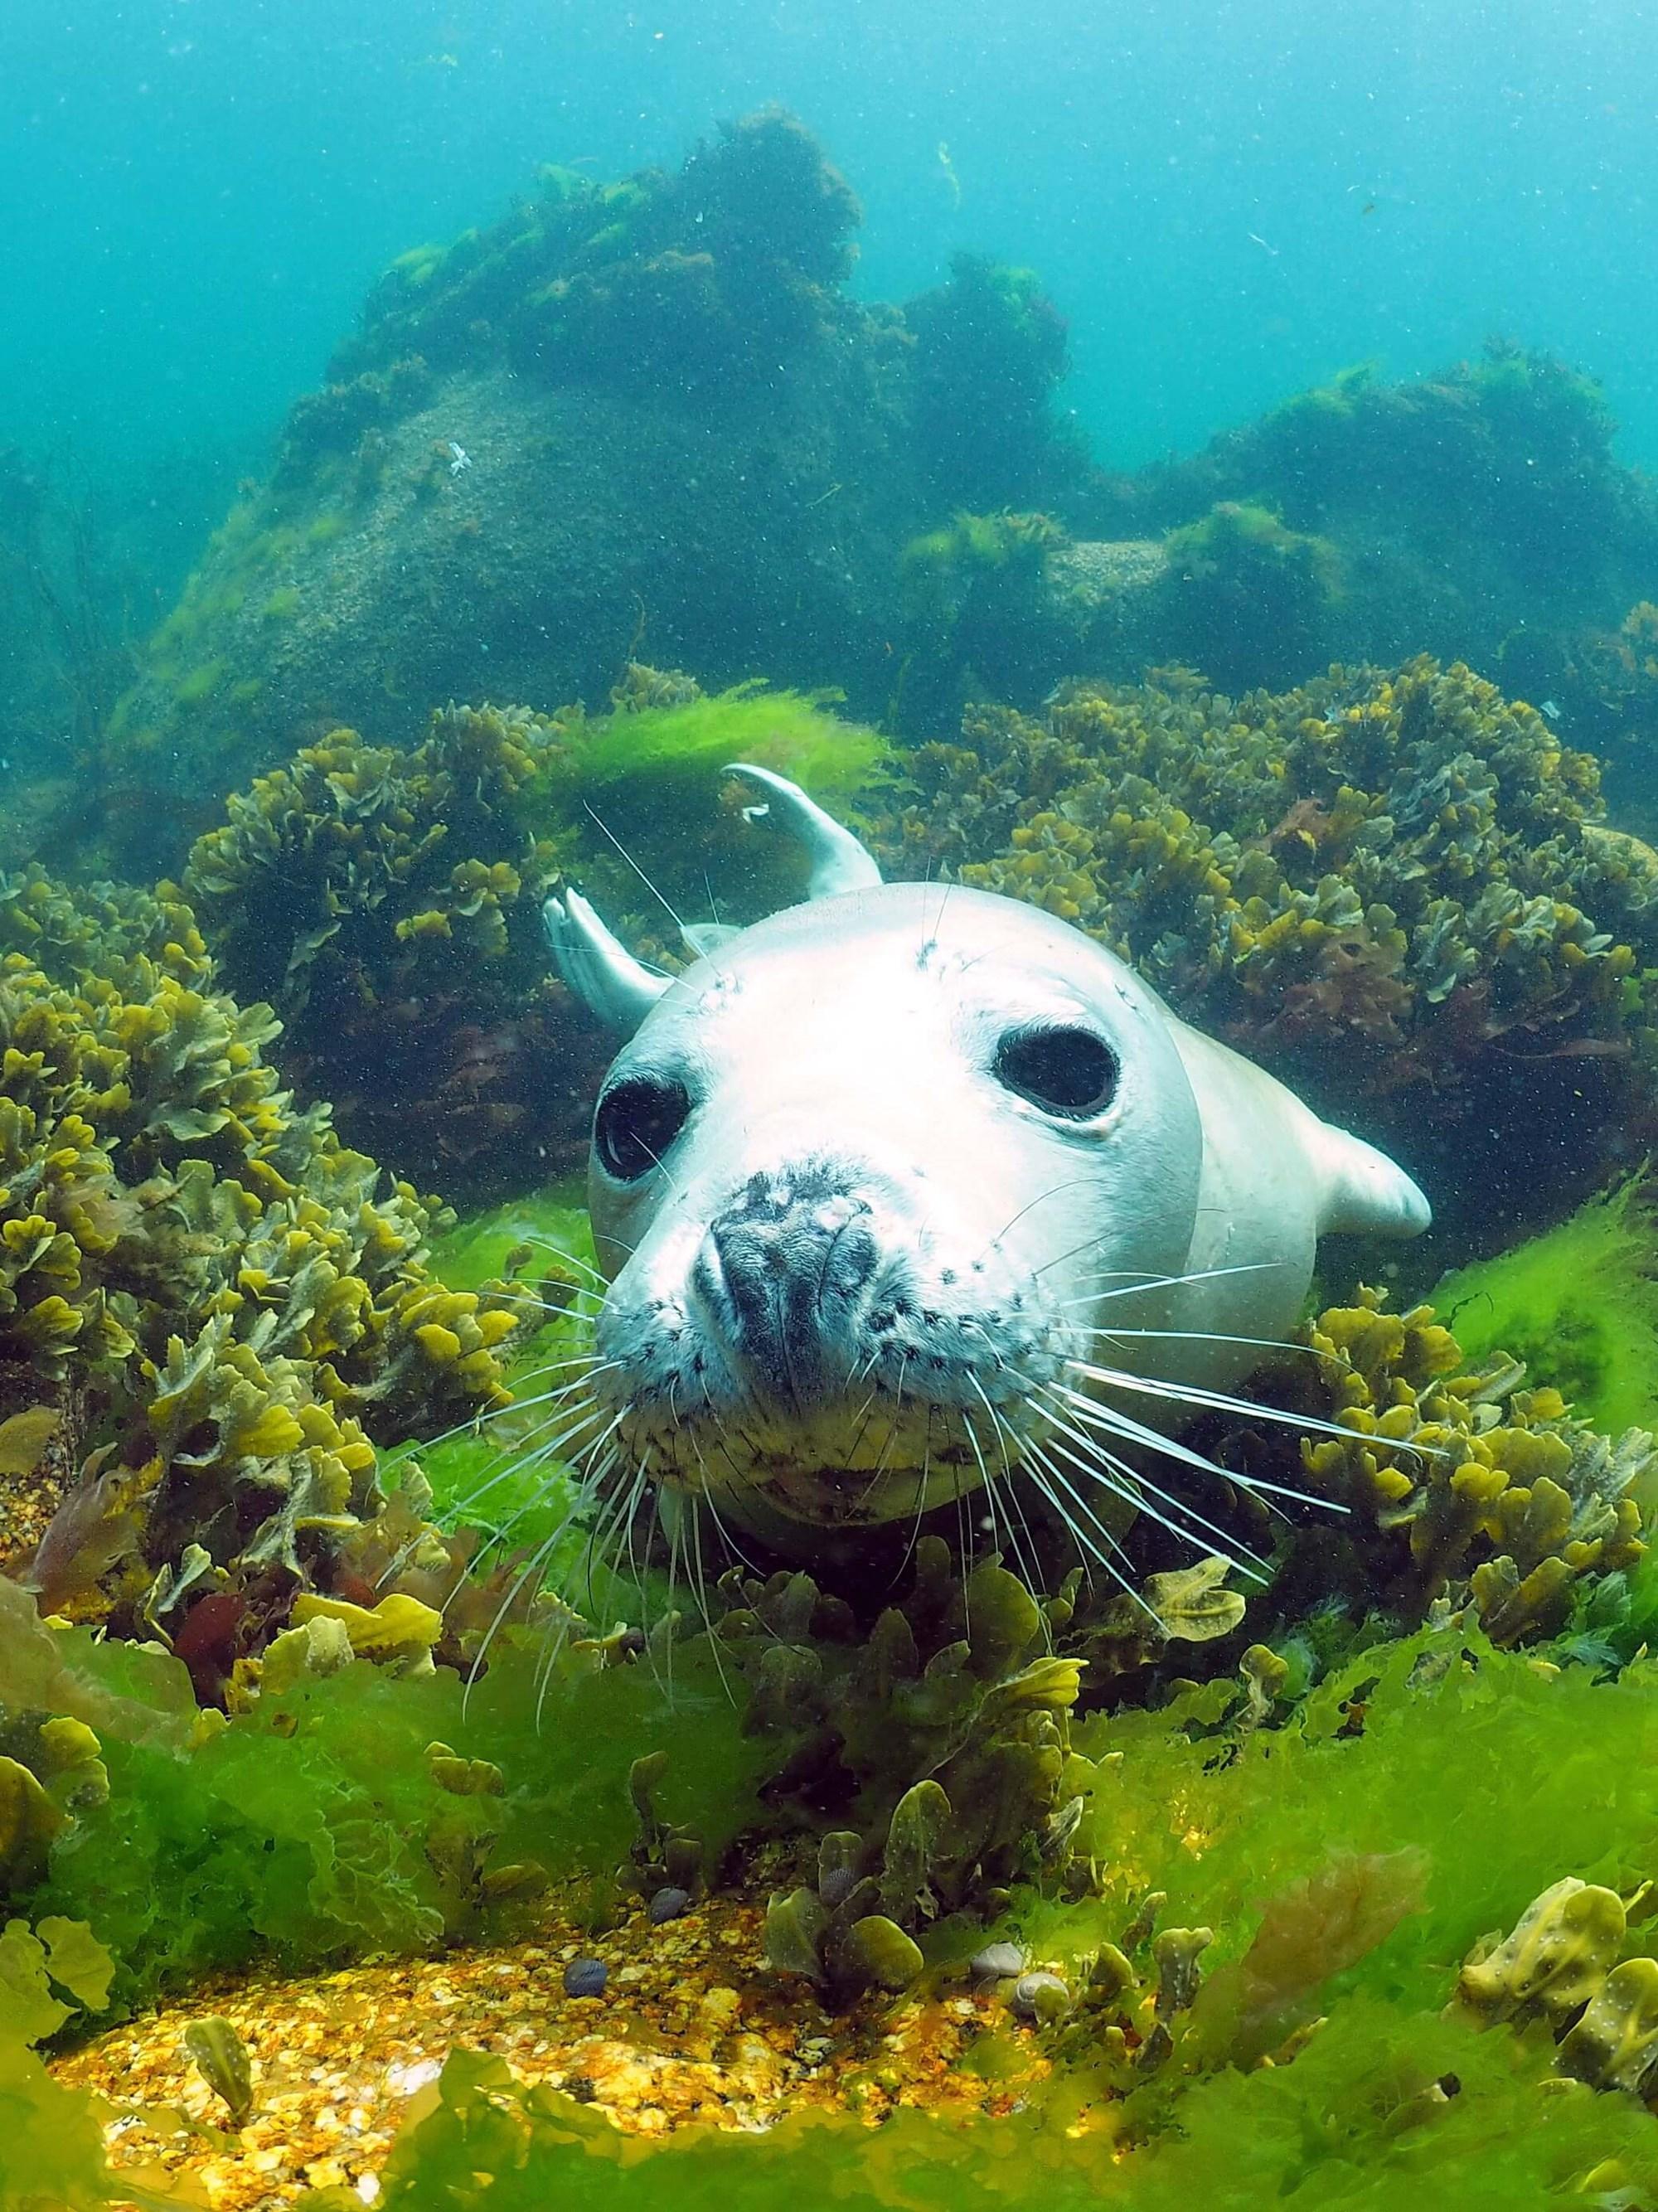 seal in shallow water